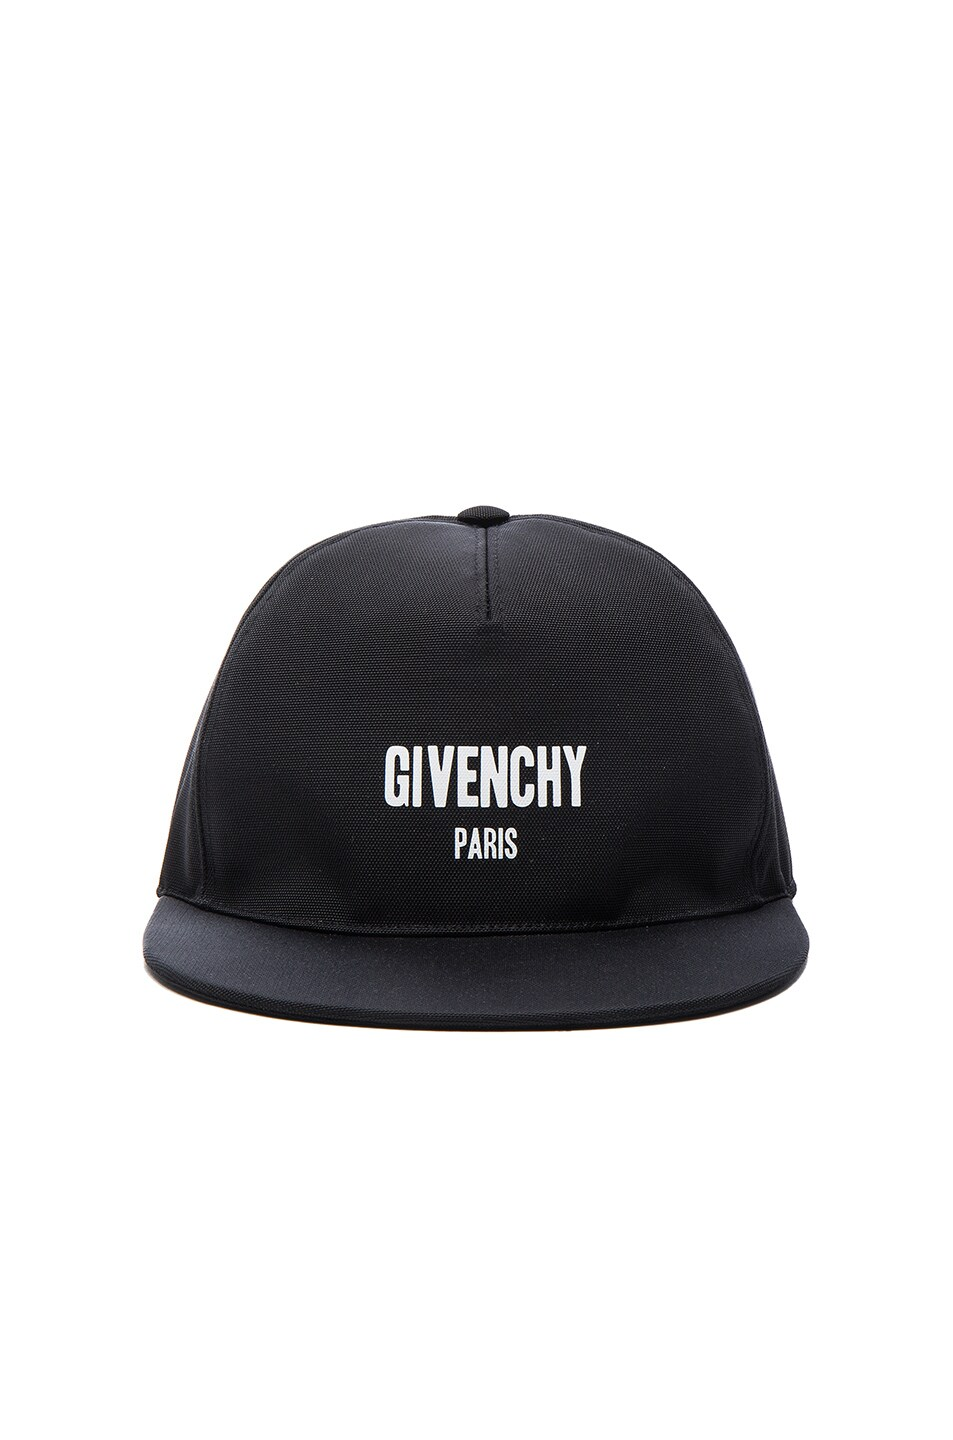 Image 1 of Givenchy Logo Cap in Black c4c21575b85